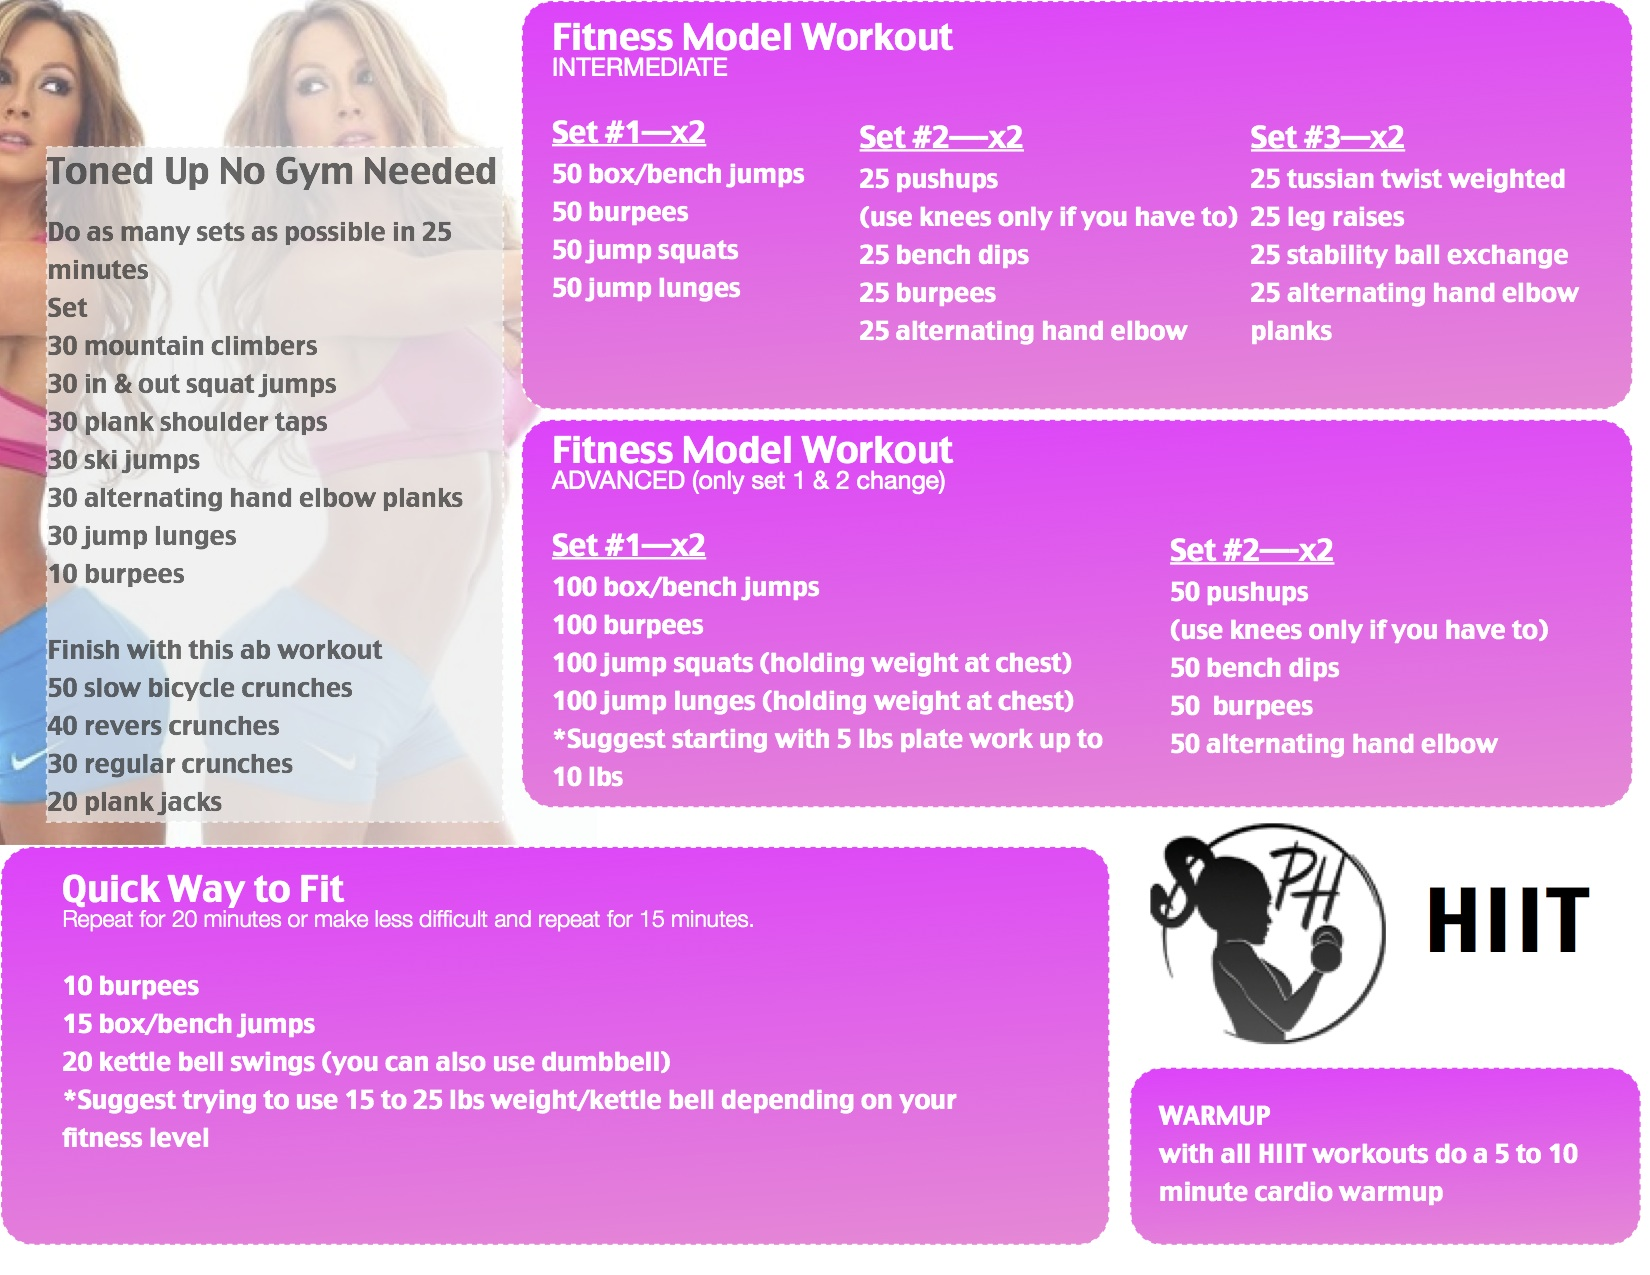 HIIT Workout Paige Hathaway